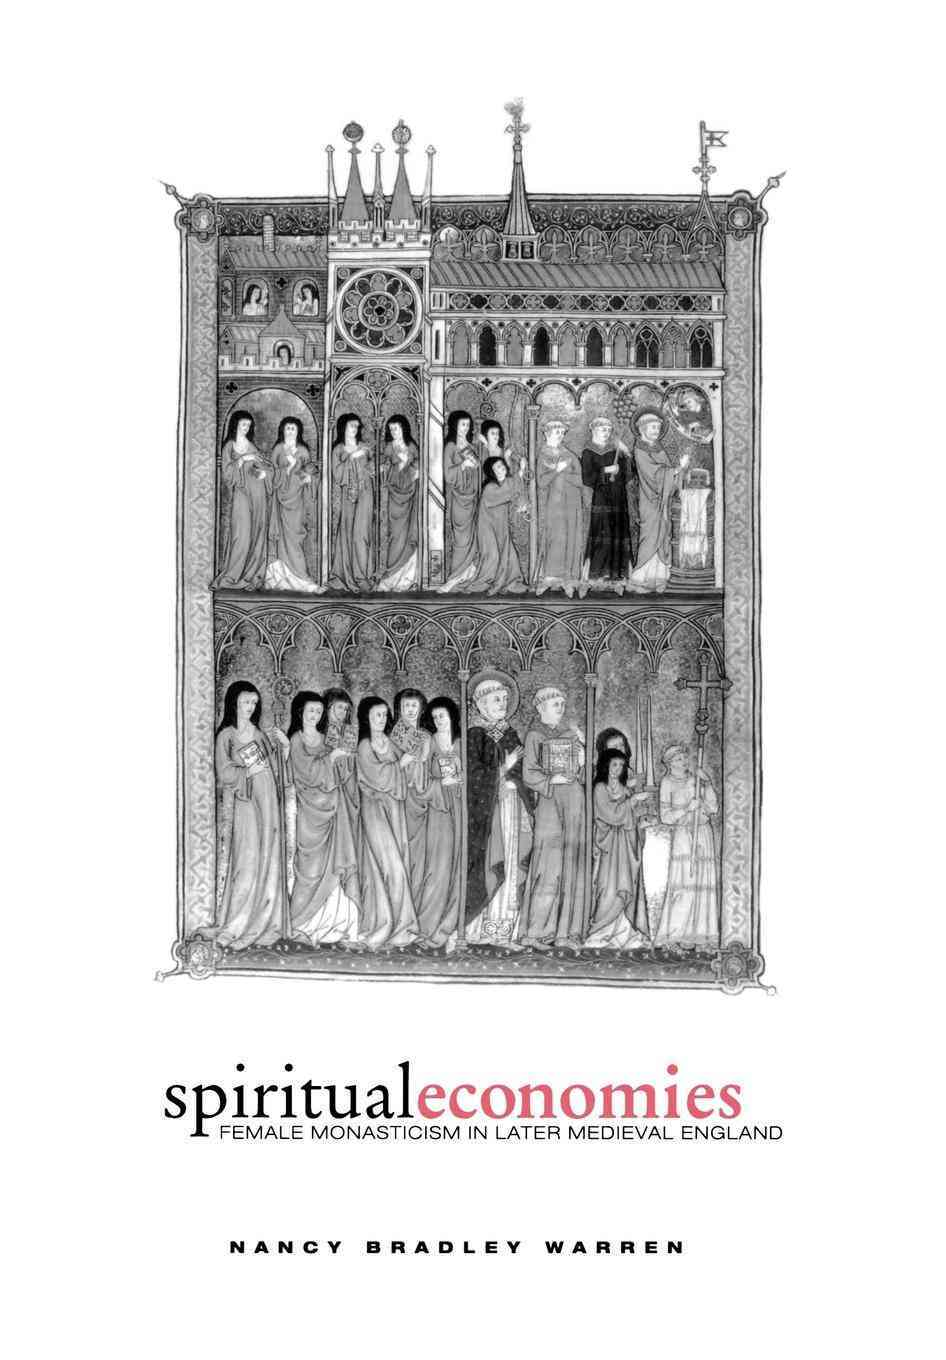 Spiritual Economies: Female Monasticism in Later Medieval England (Hardcover)